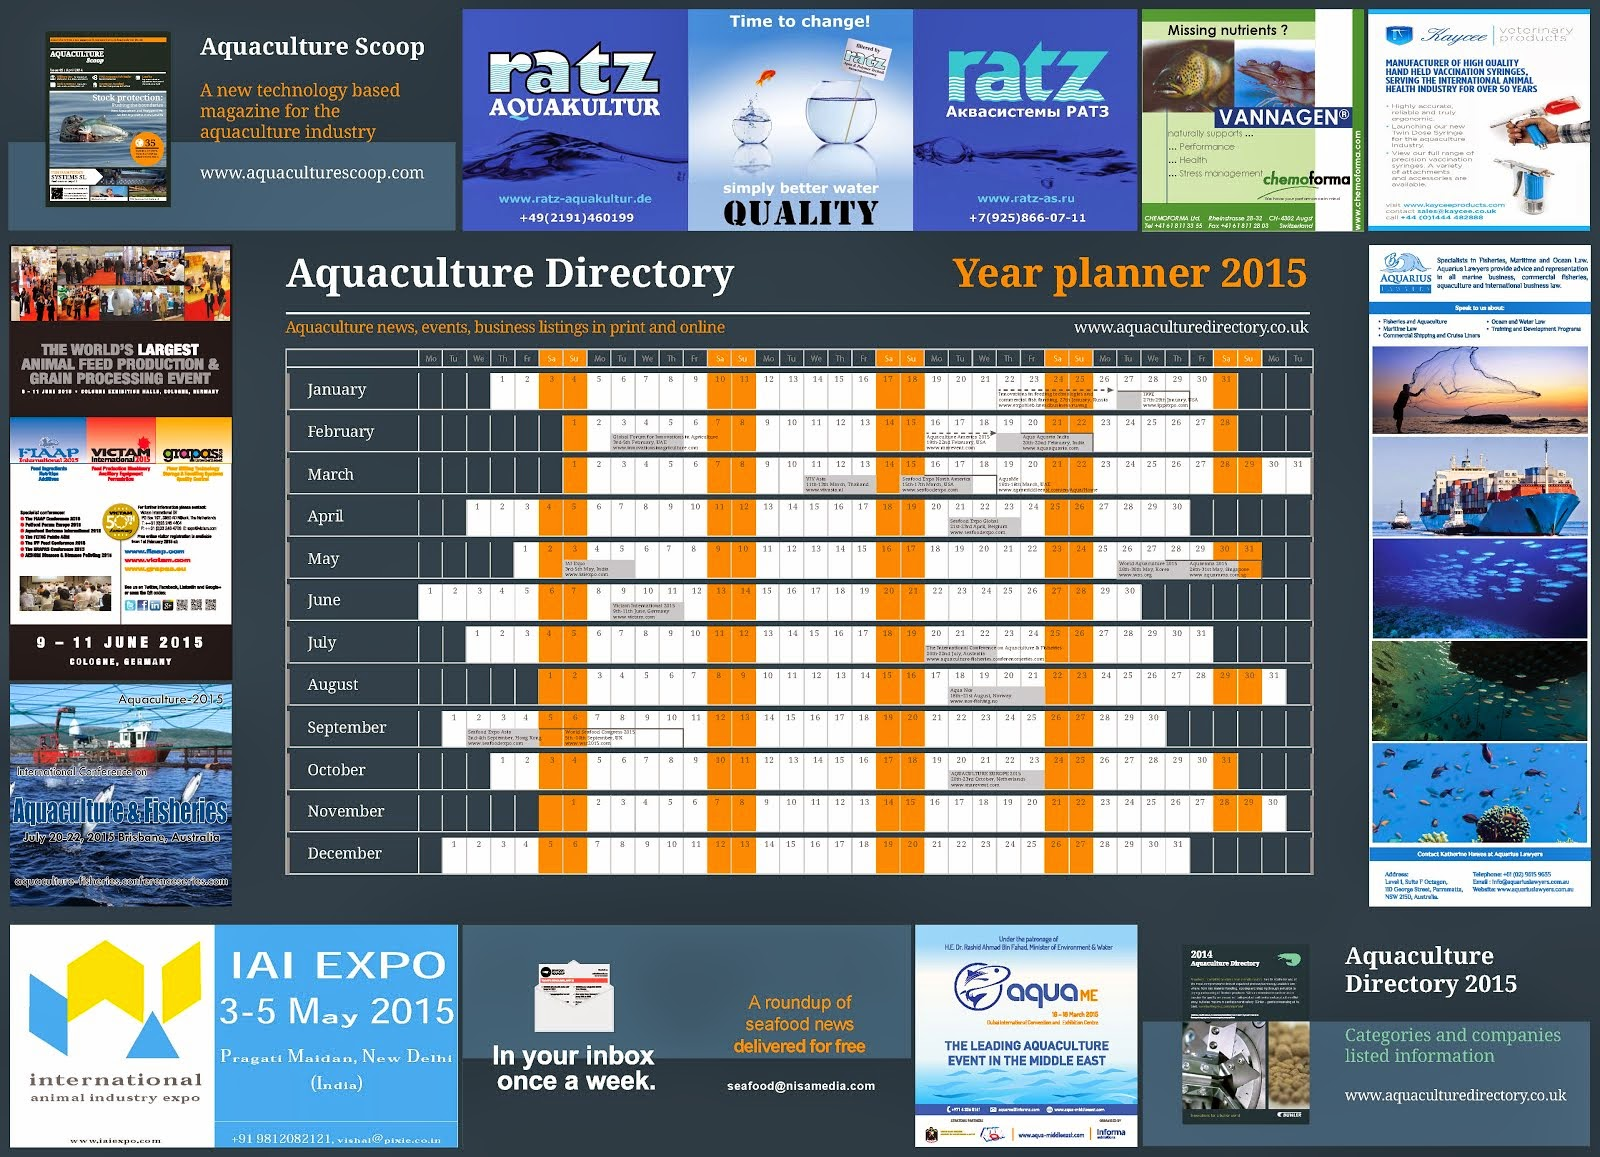 Aquaculture Directory Events 2015